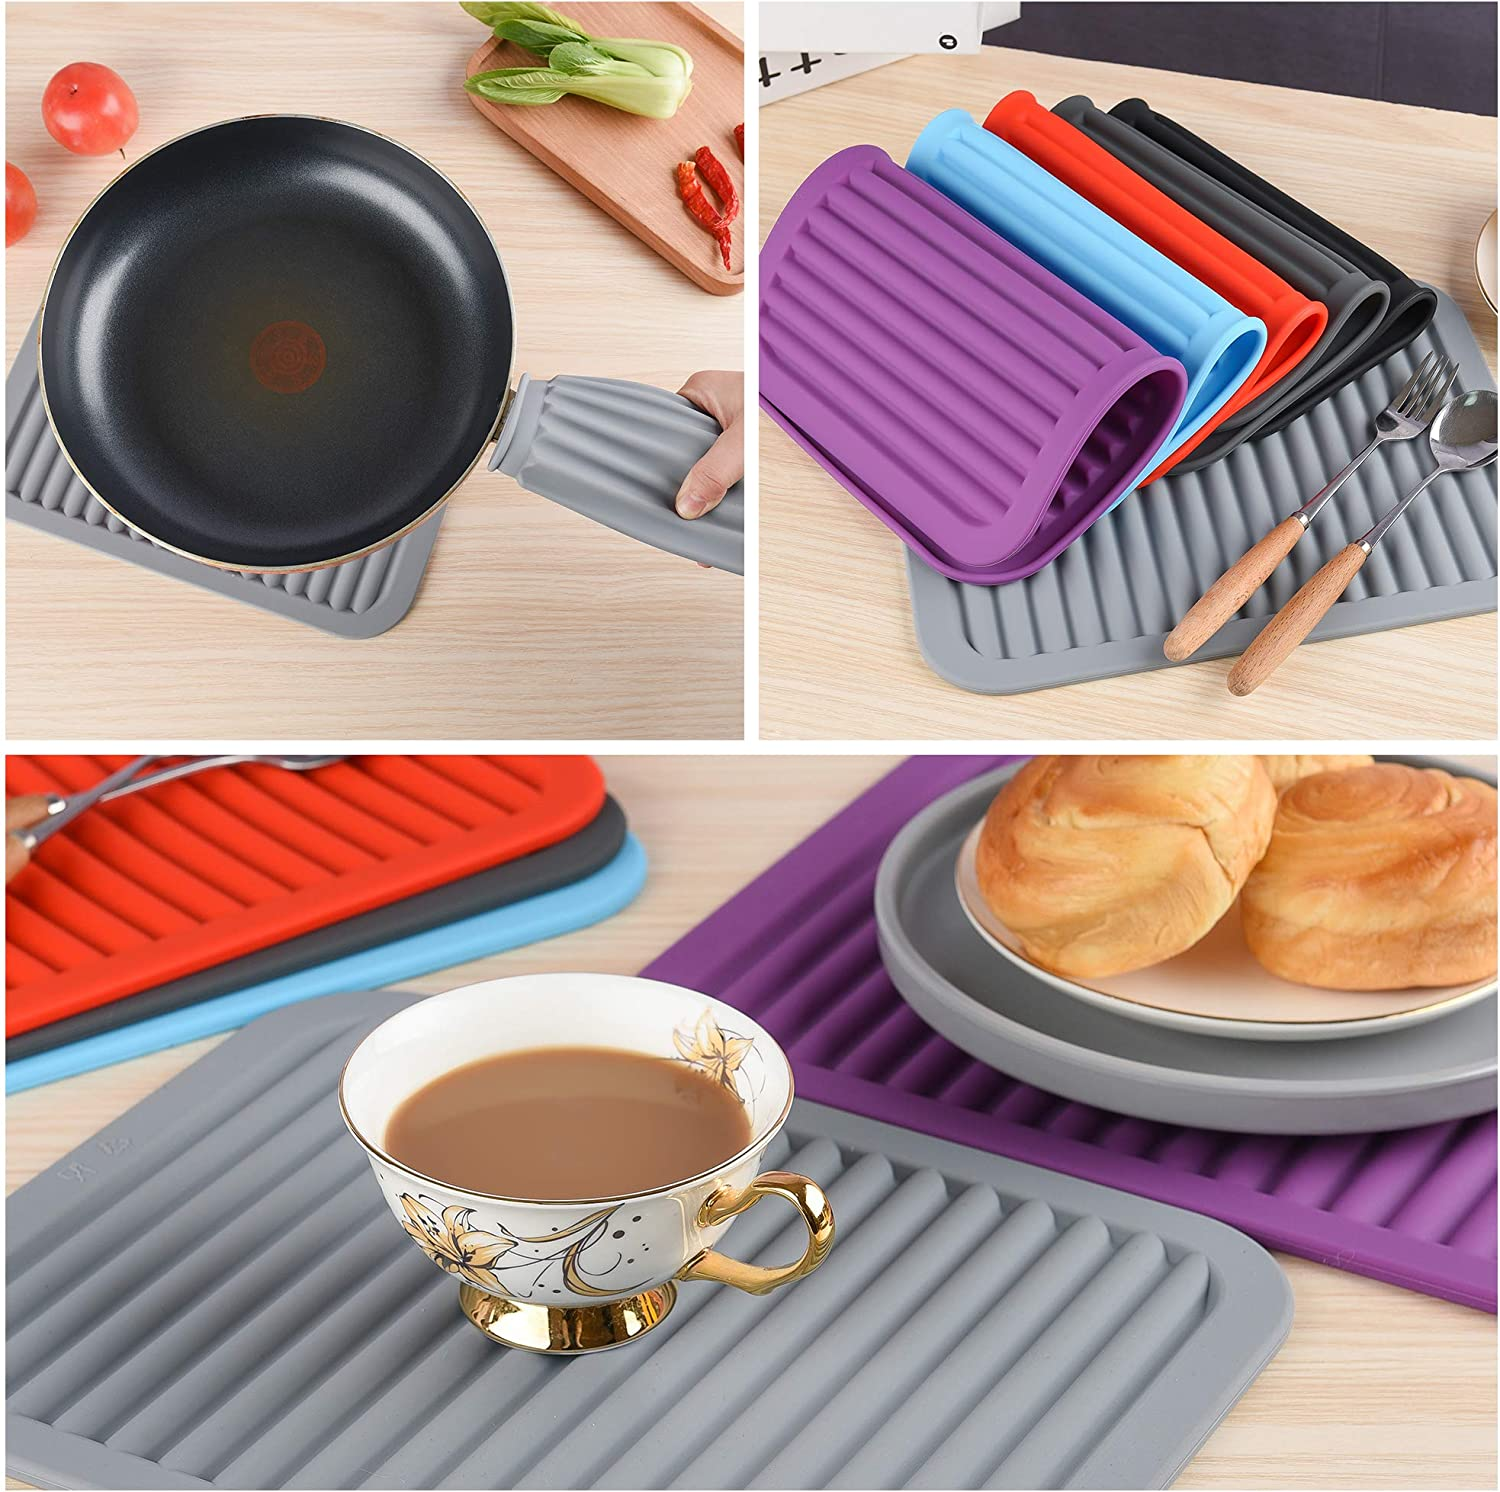 Black Smithcraft Trivets for Hot pots and Pans,Silicone Trivets for Hot Dishes,Mats for Countertop Mat Pads Heat Resistant Table Placemats 2 Pack,Size:9x12 Inch Shape:Rectangular